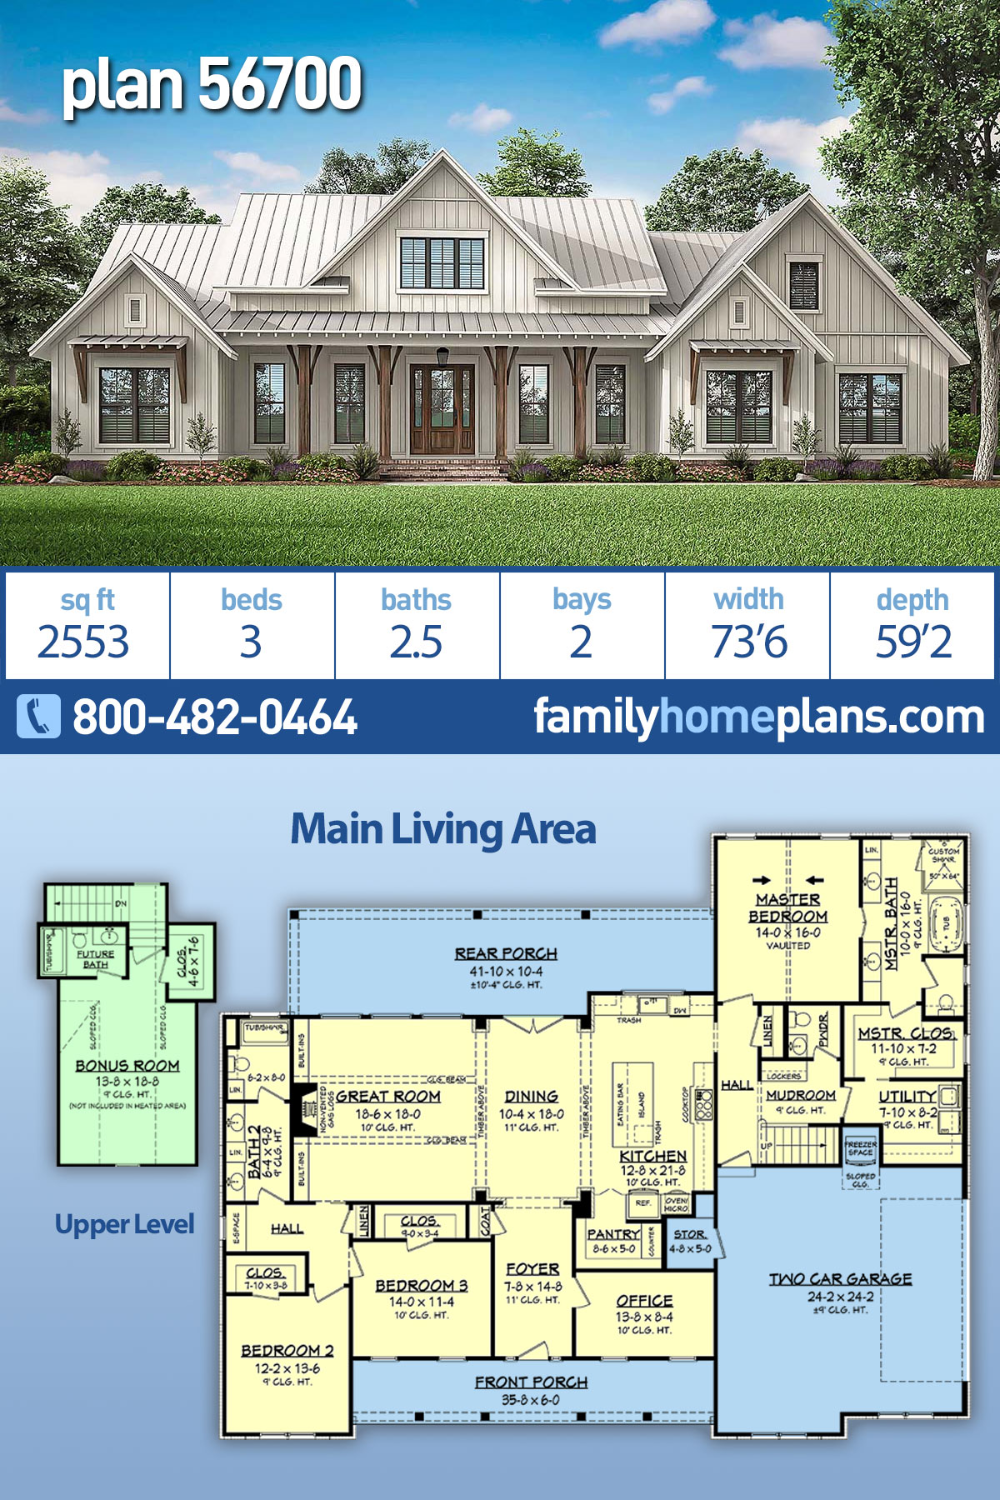 Photo of Modern Style House Plan 56700 with 3 Bed, 3 Bath, 2 Car Garage